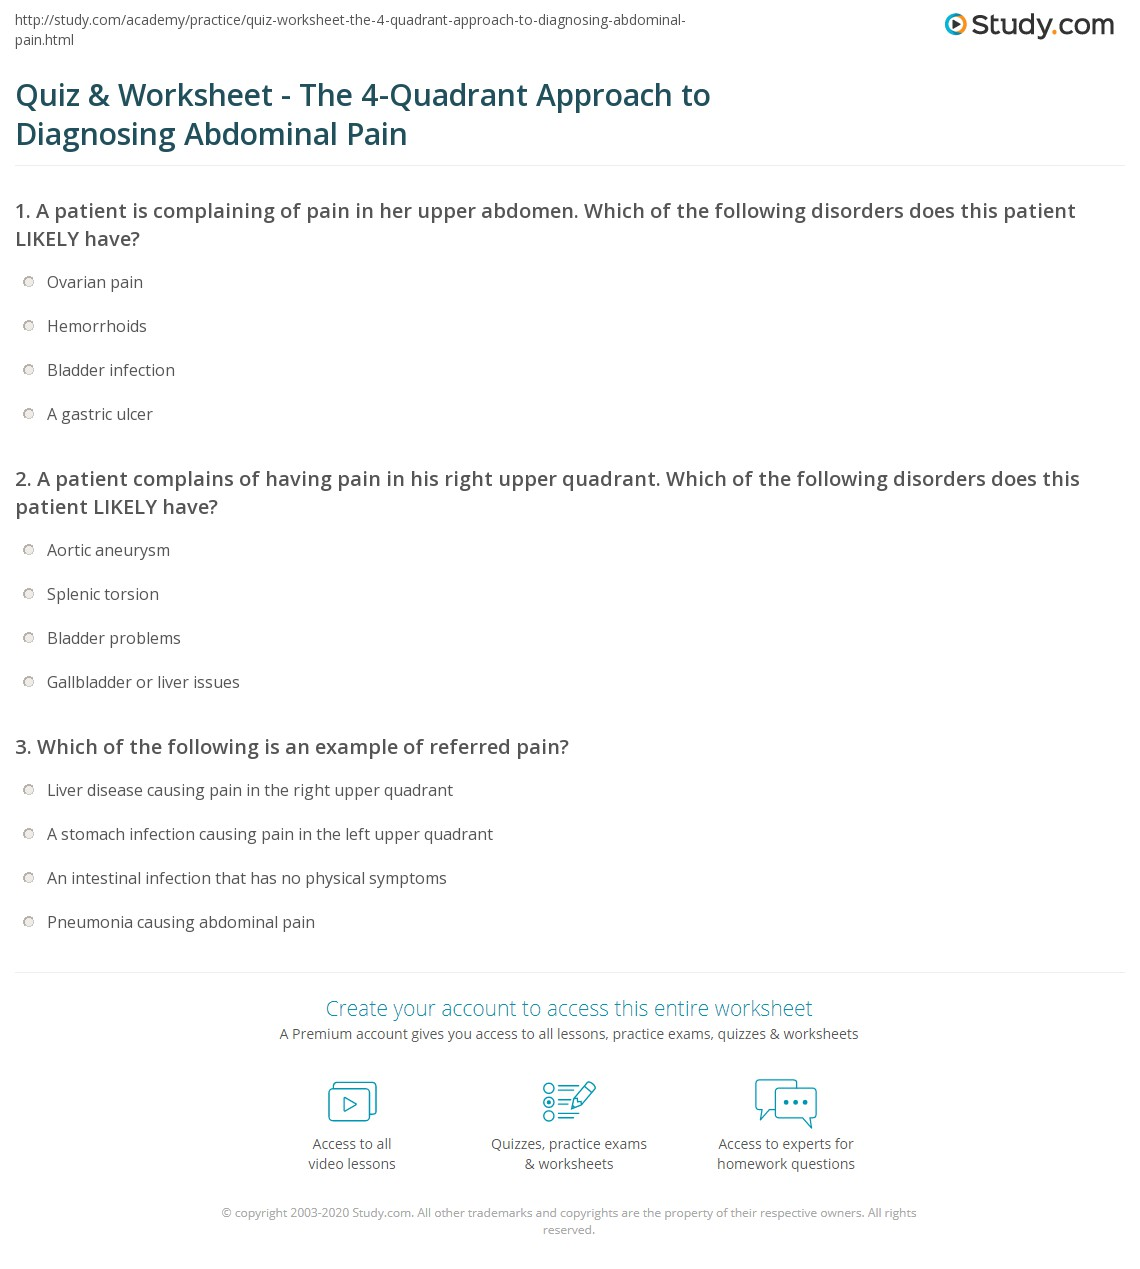 Quiz Worksheet The 4 Quadrant Approach To Diagnosing Abdominal